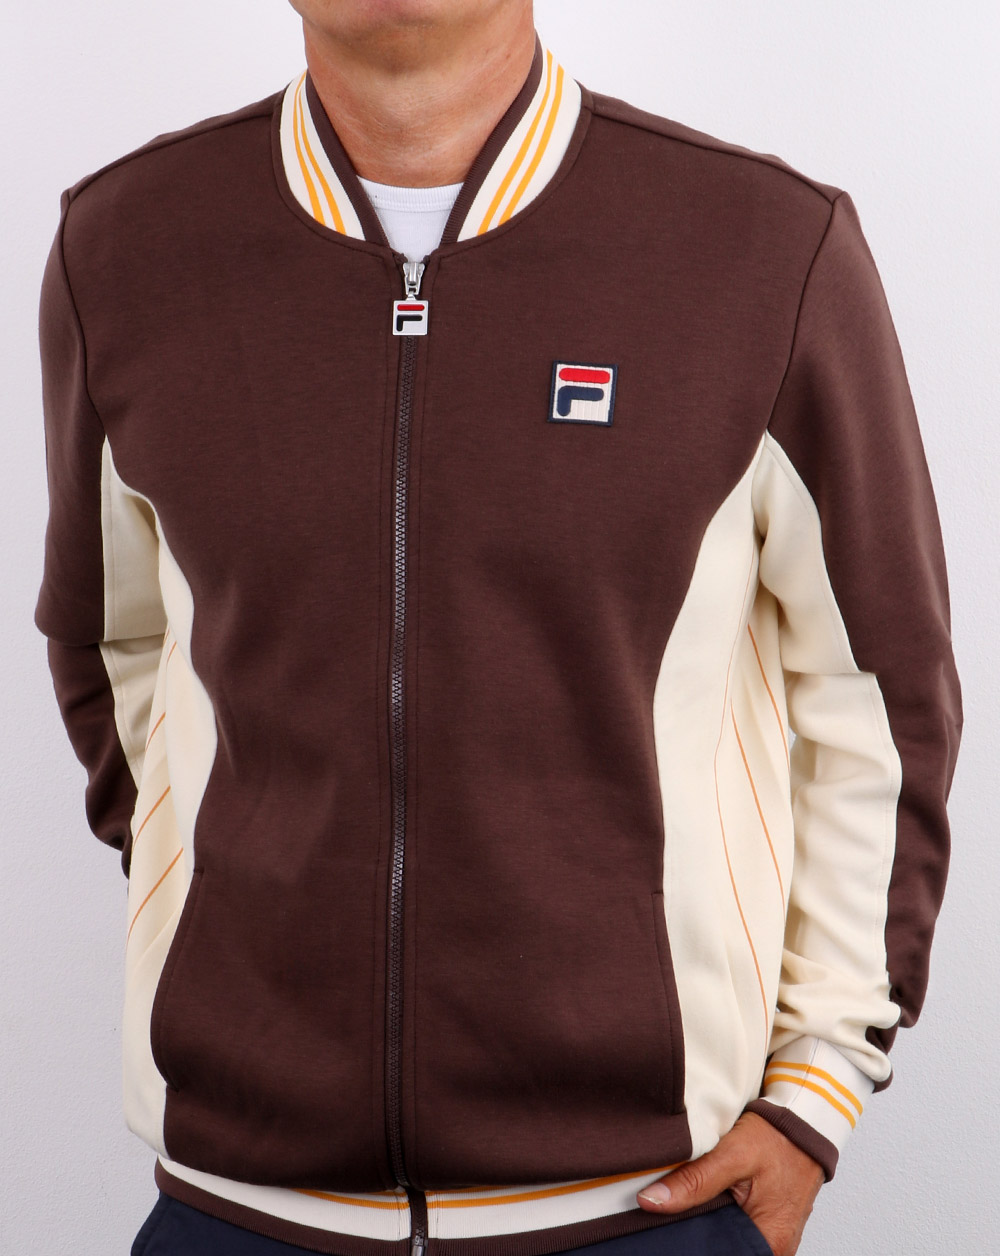 Fila Vintage Settanta Track Top Pro F Brown Cream